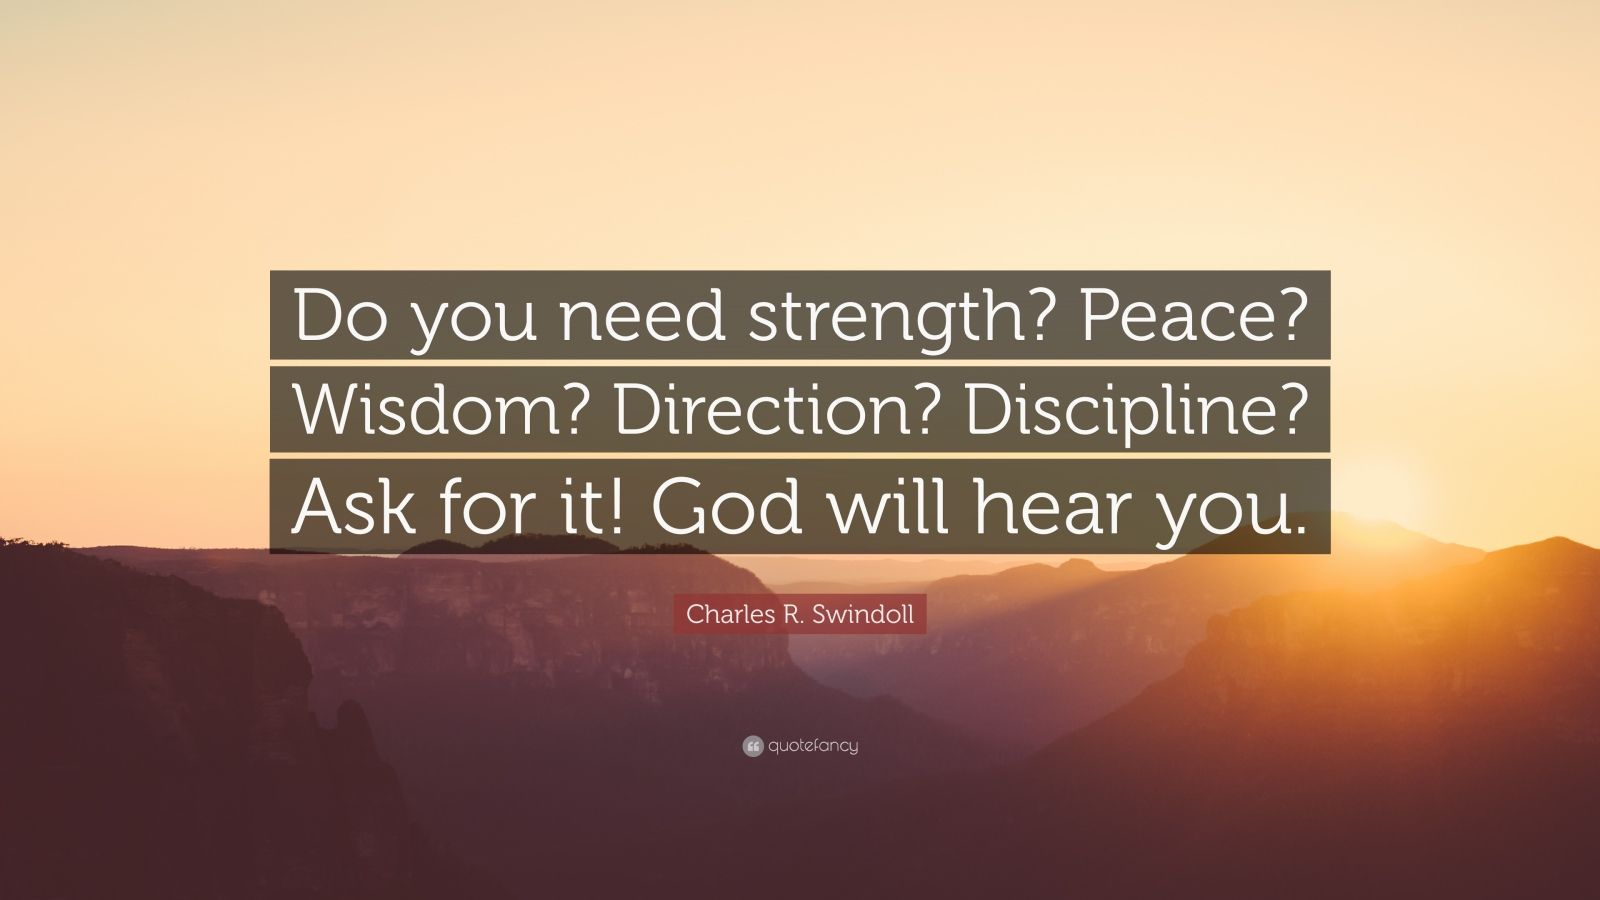 """Charles R. Swindoll Quote: """"Do you need strength? Peace? Wisdom? Direction? Discipline? Ask for it! God will hear you."""""""